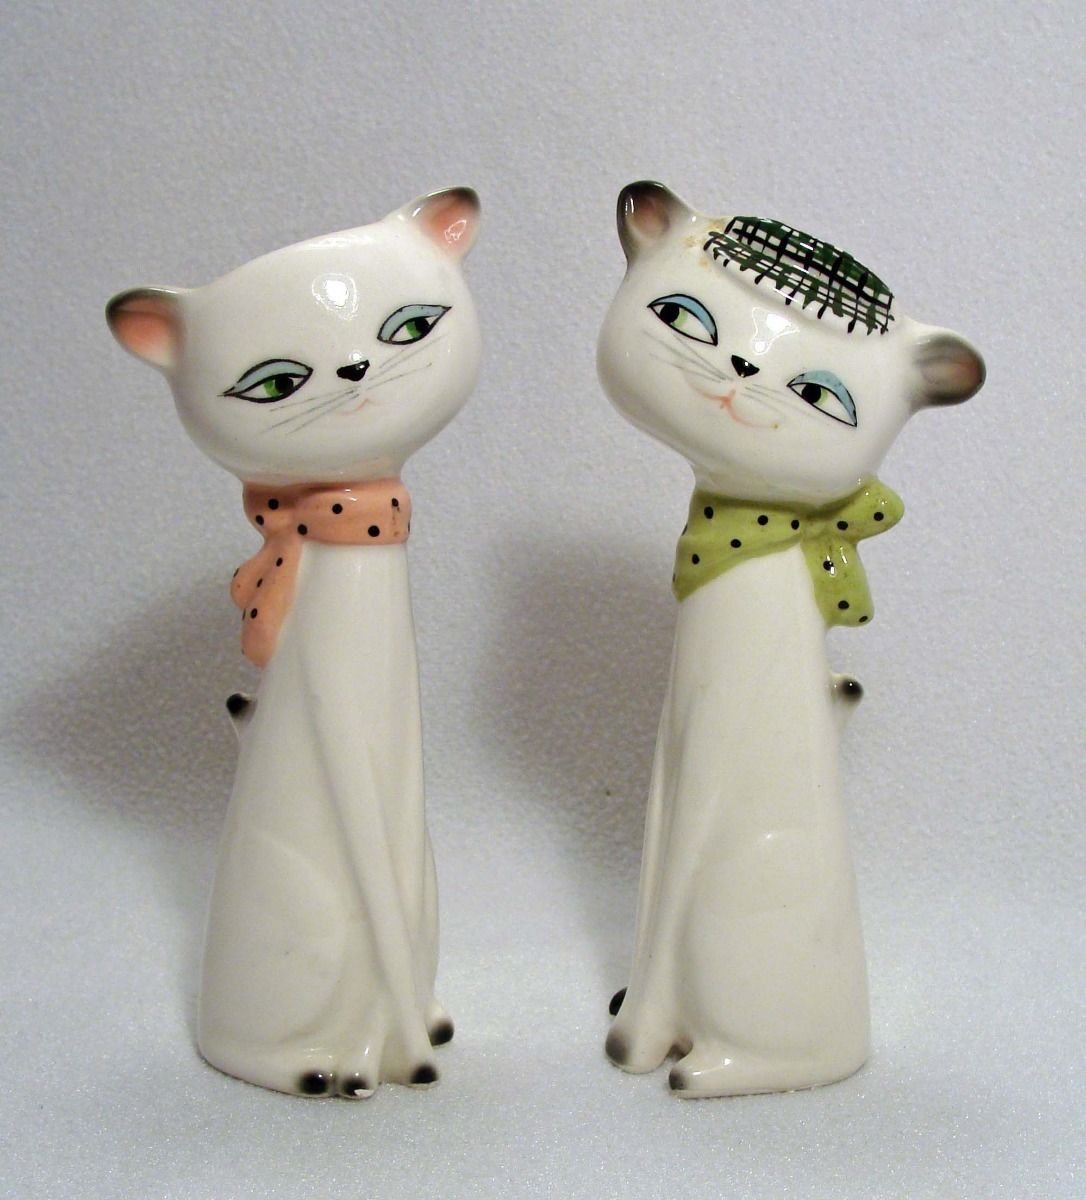 Holt howard cozy kittens tom and pussy cat bud vases holt howard holt howard cozy kittens tom and pussy cat bud vases reviewsmspy